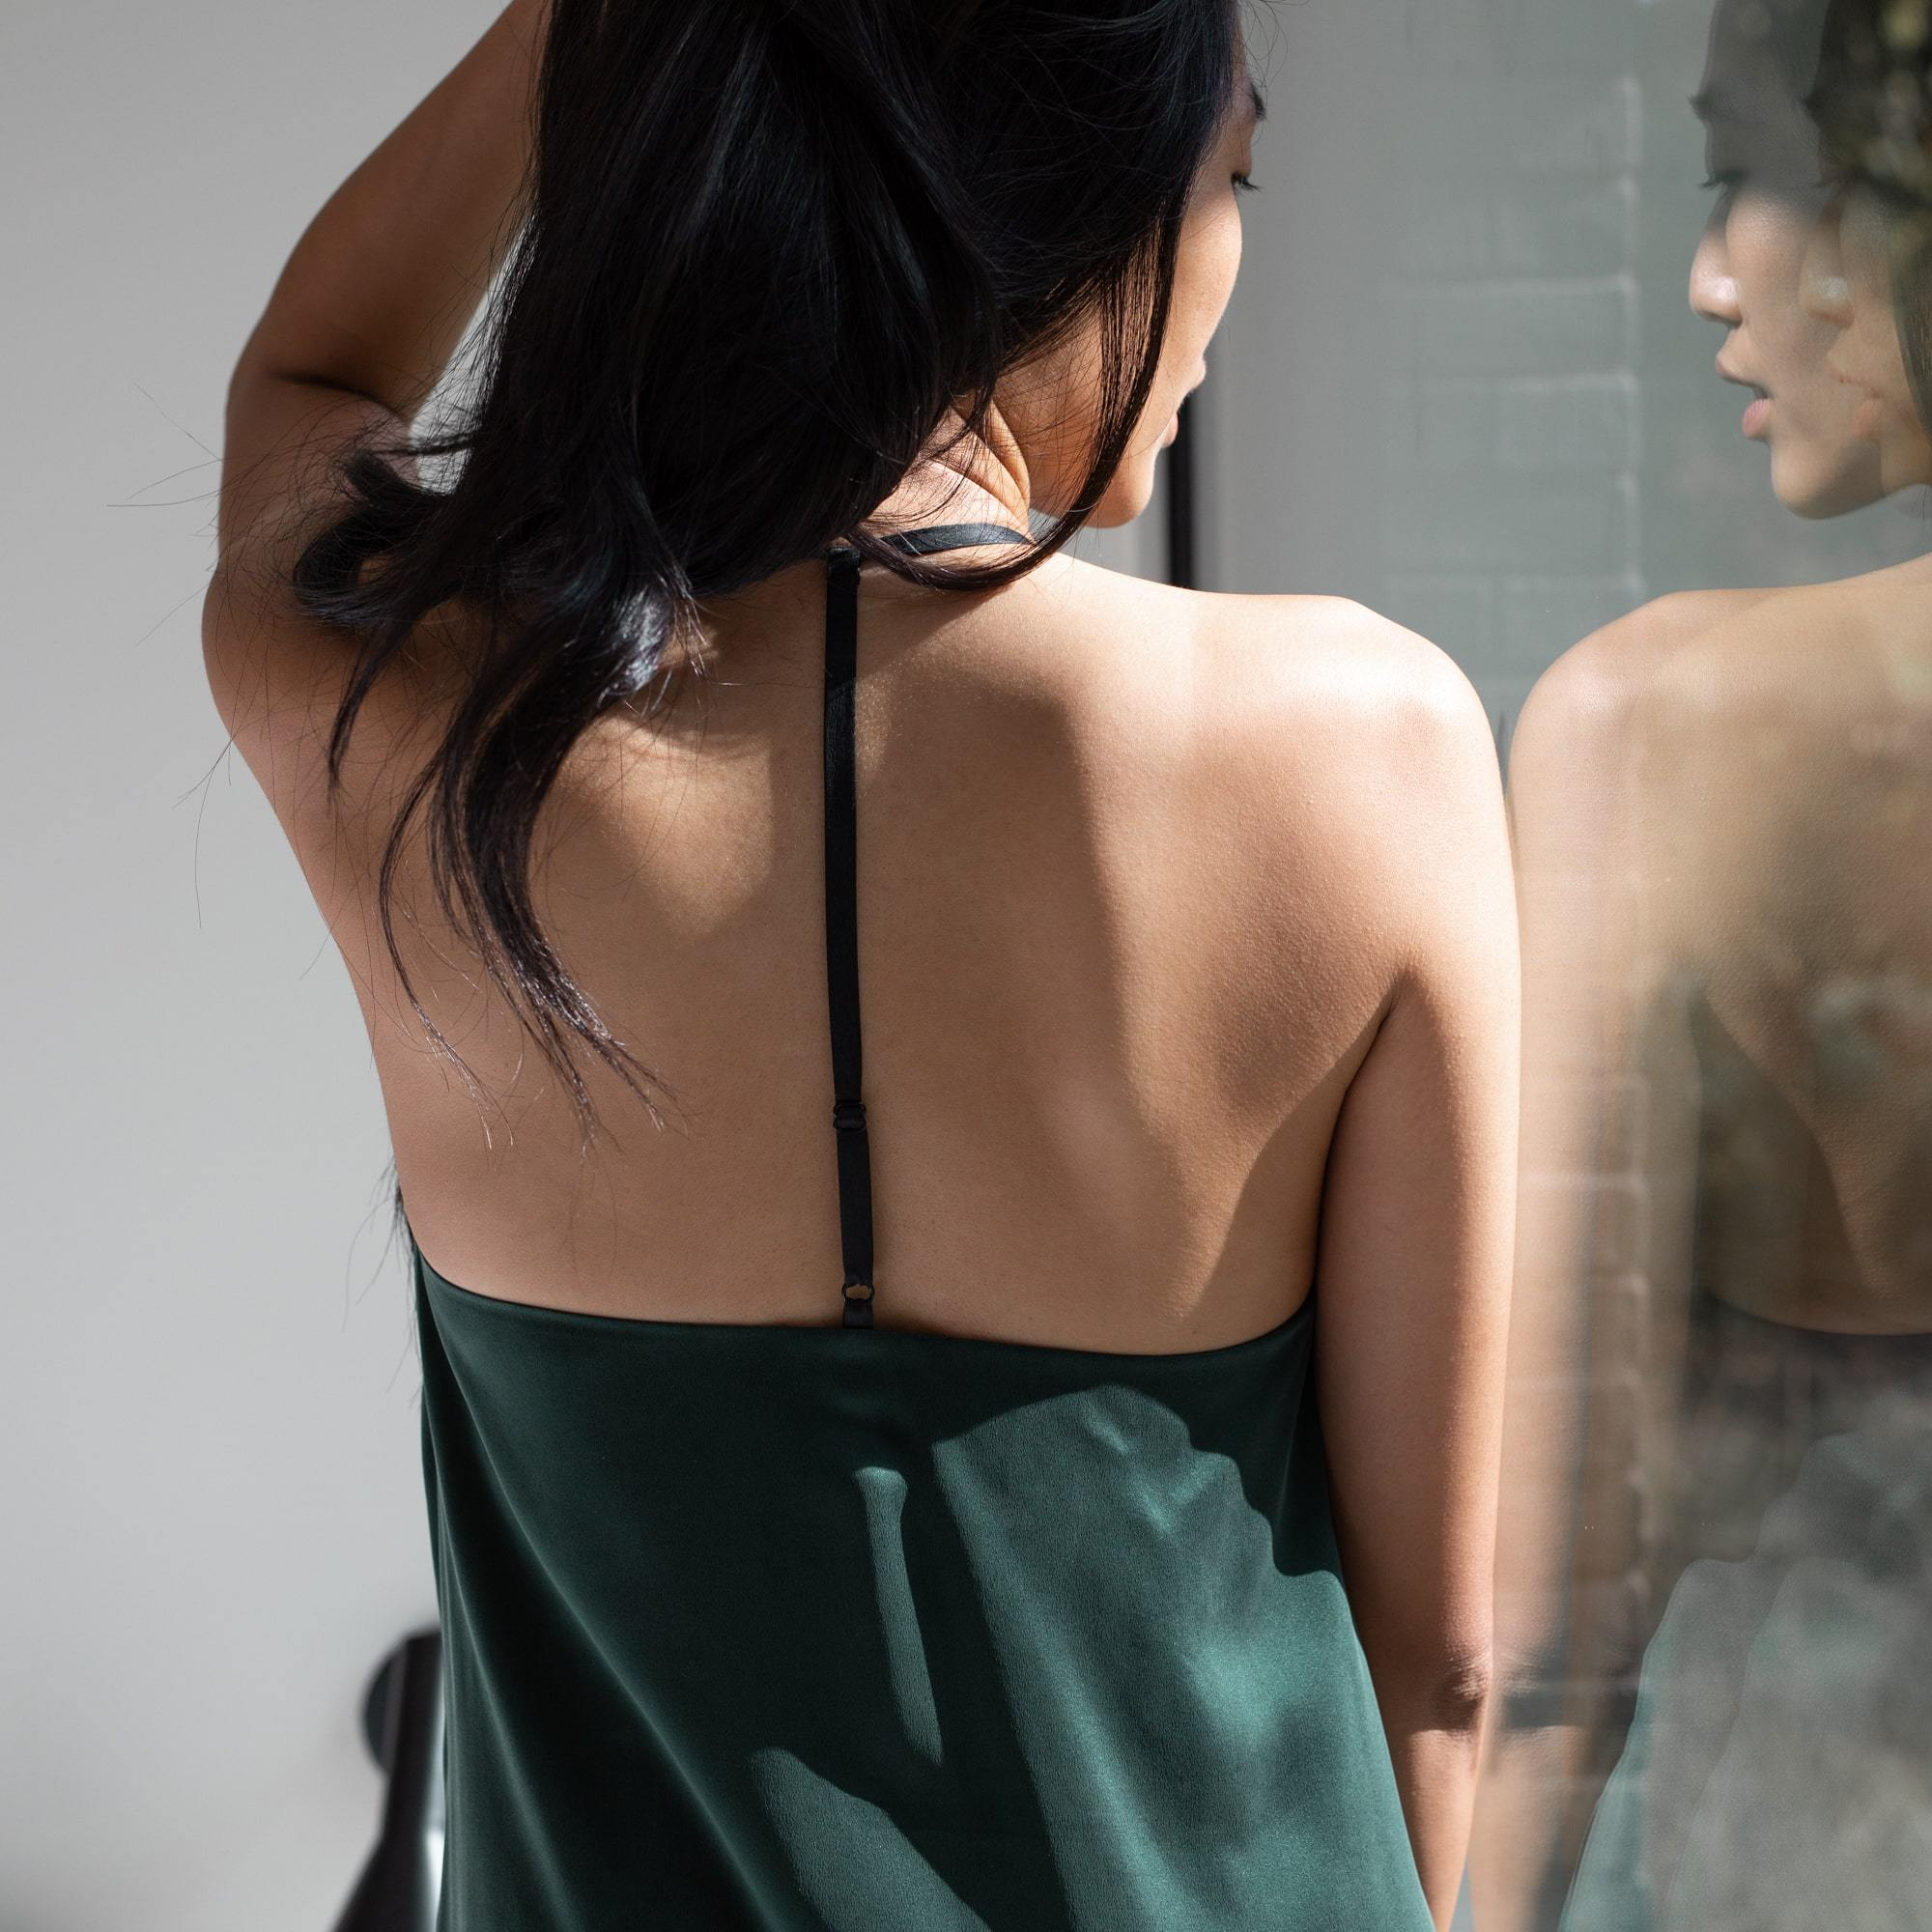 Lunya Sleepwear Washable Silk Slip Dress - #Emerald/Black